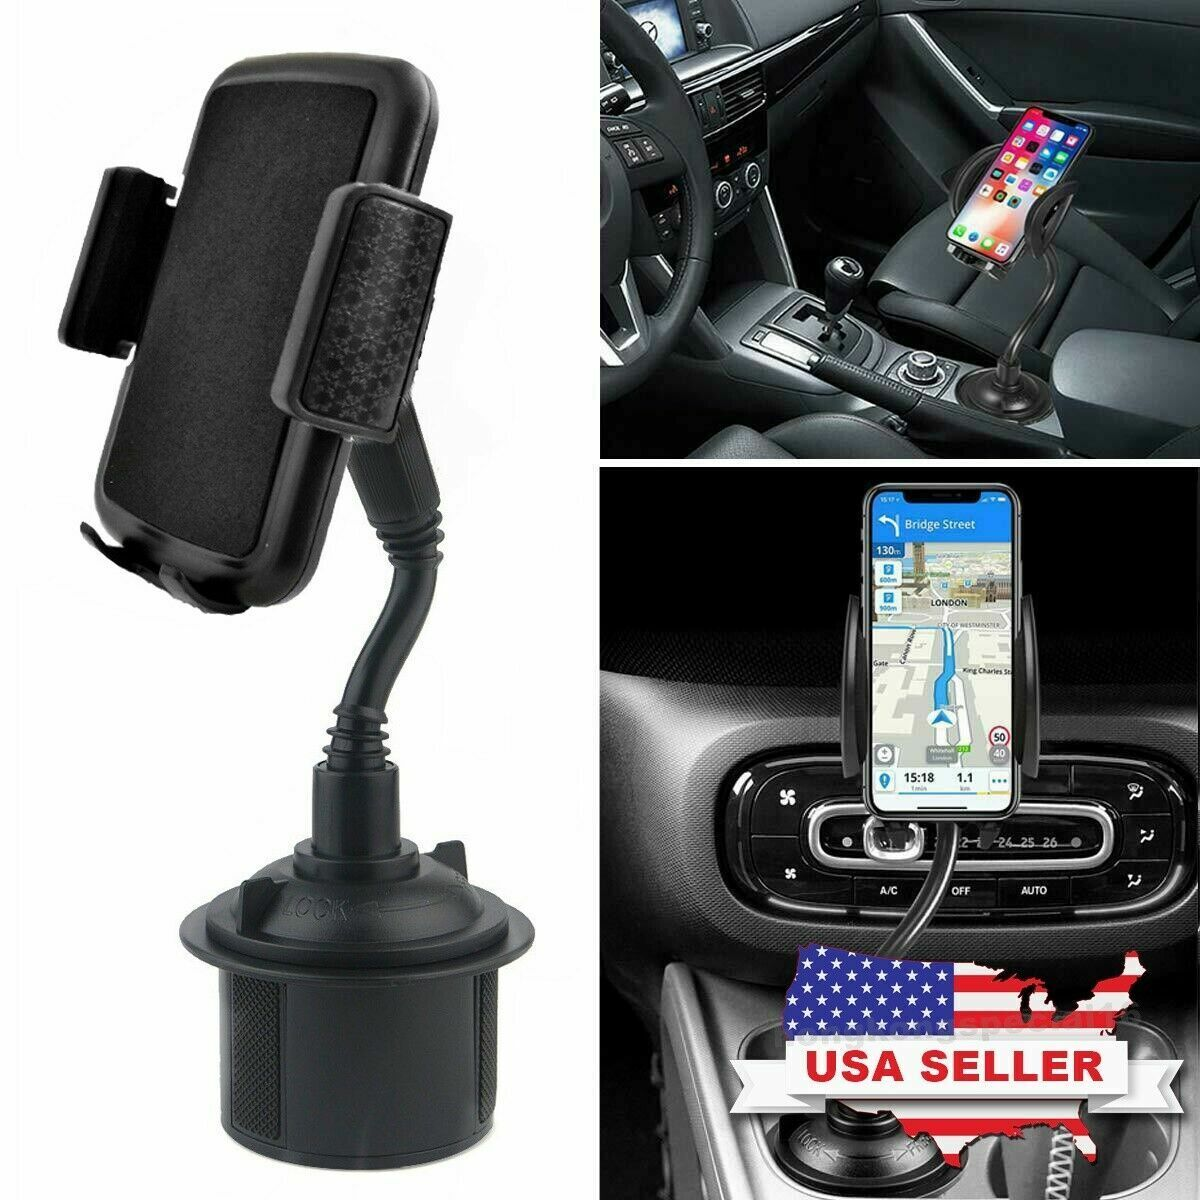 New Universal Car Mount Adjustable Gooseneck Cup Holder Cradle for Cell Phone US Cell Phone Accessories